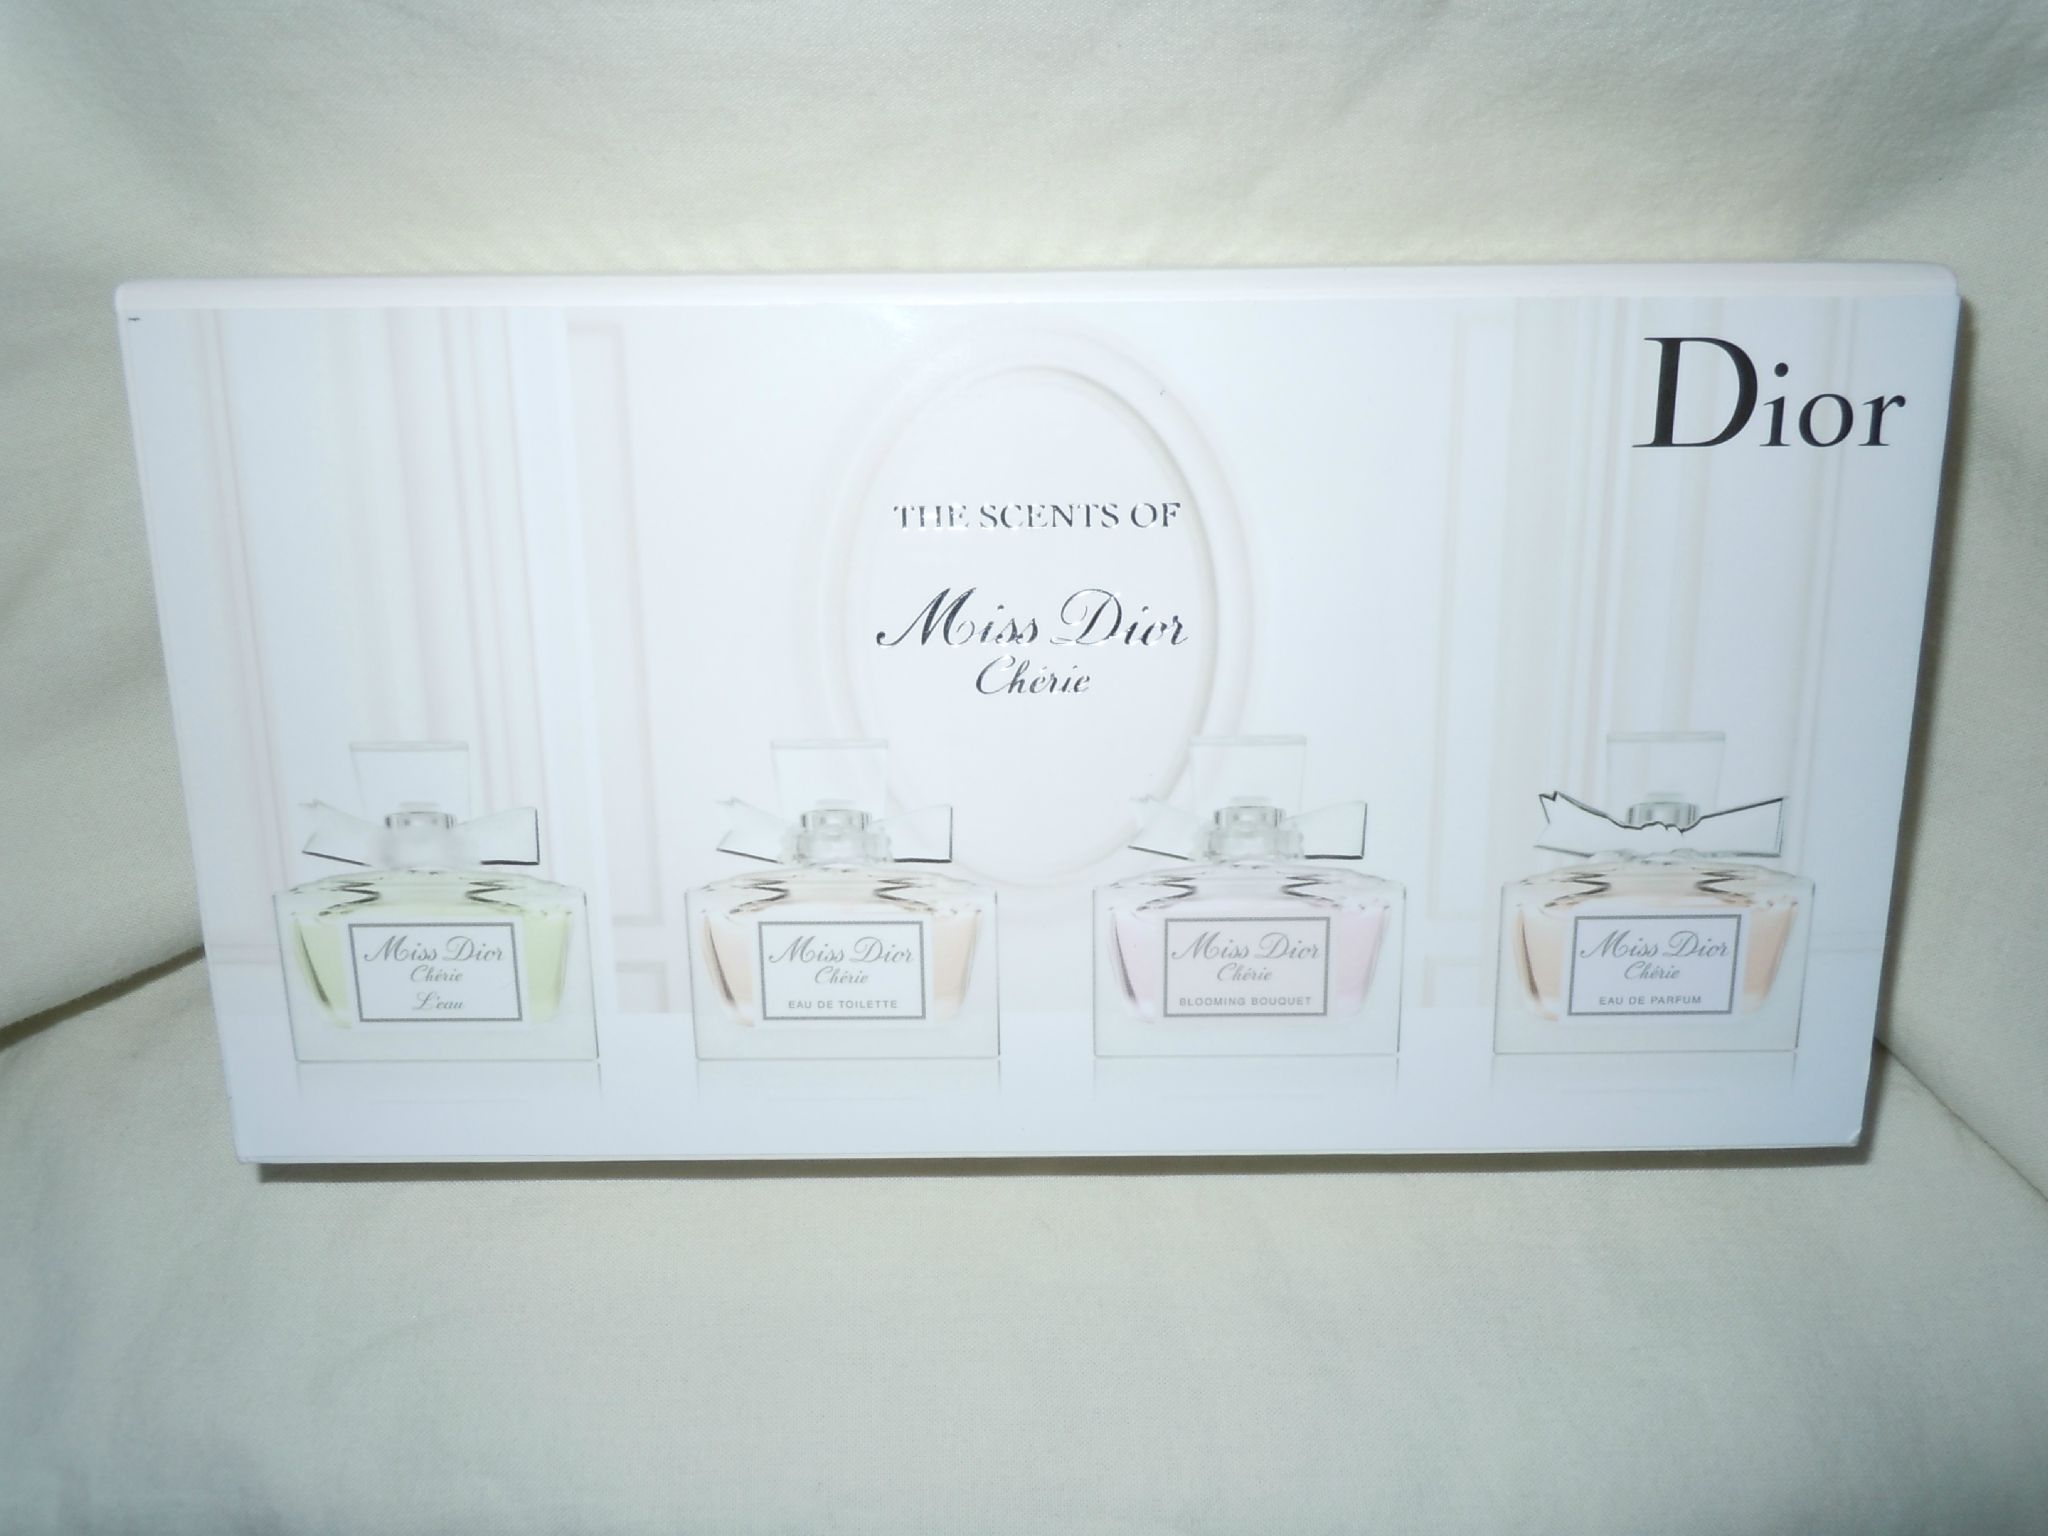 DIOR-THESCENTSOFMISSDIORCHERIE-2